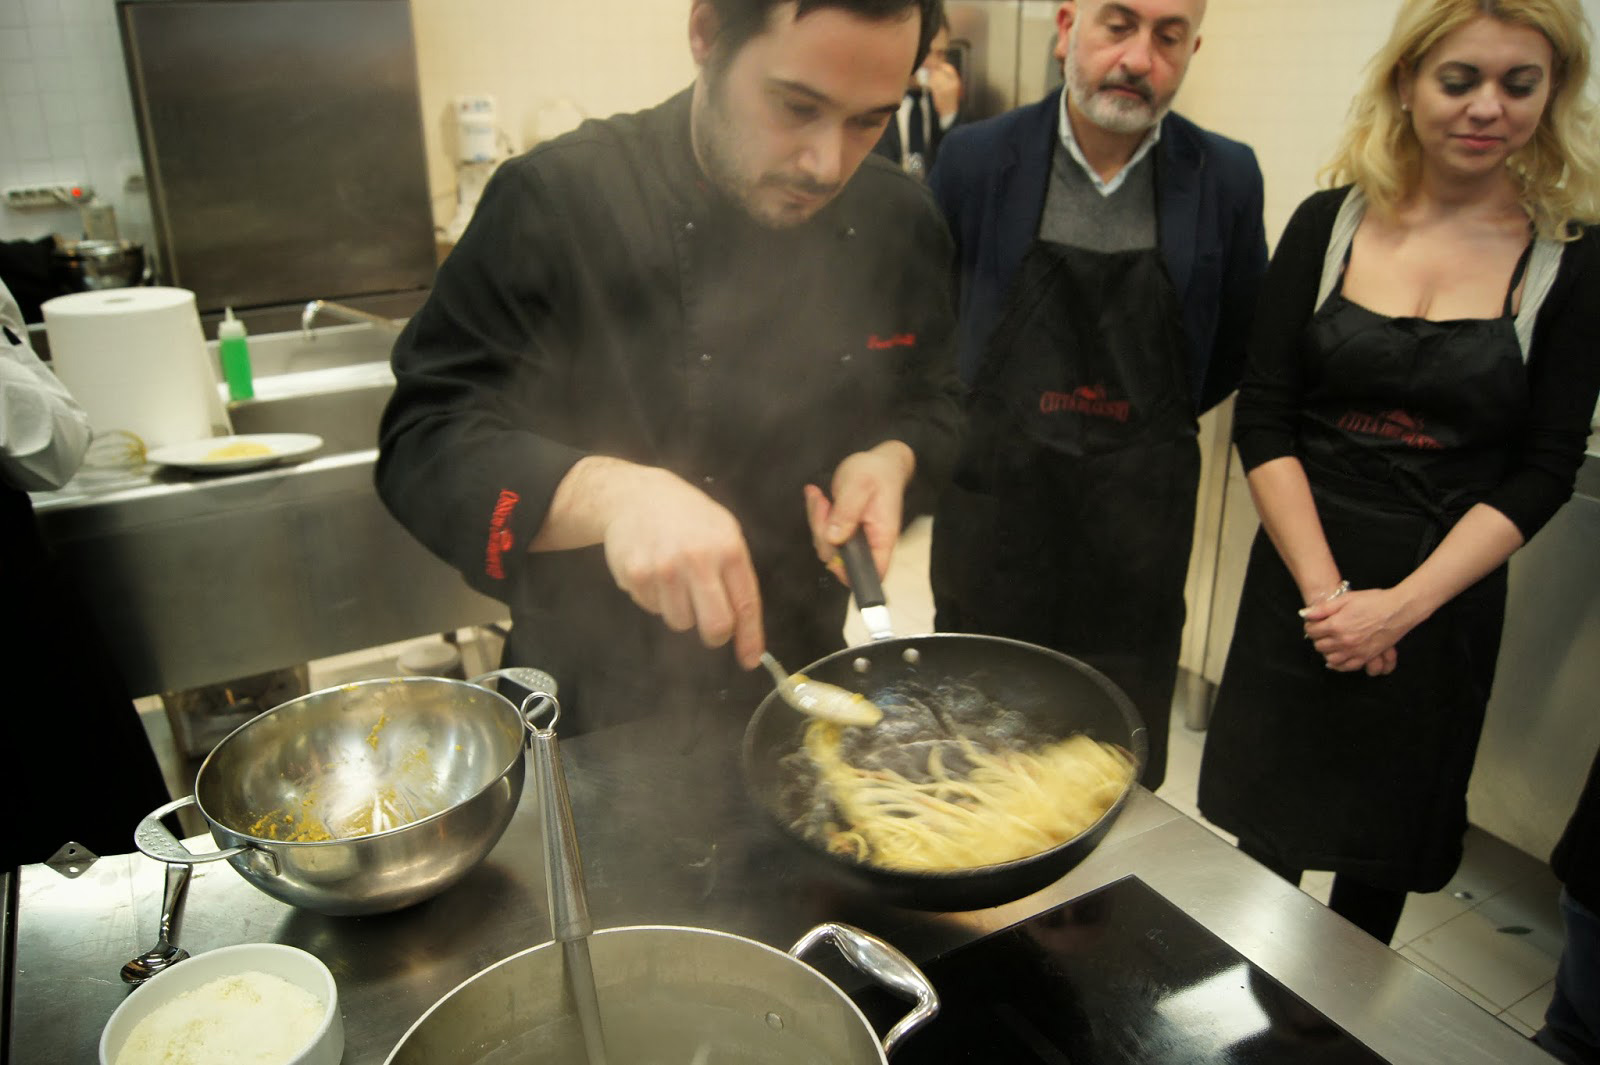 City Of Love Shows How To Prepare A Romantic Dinner For